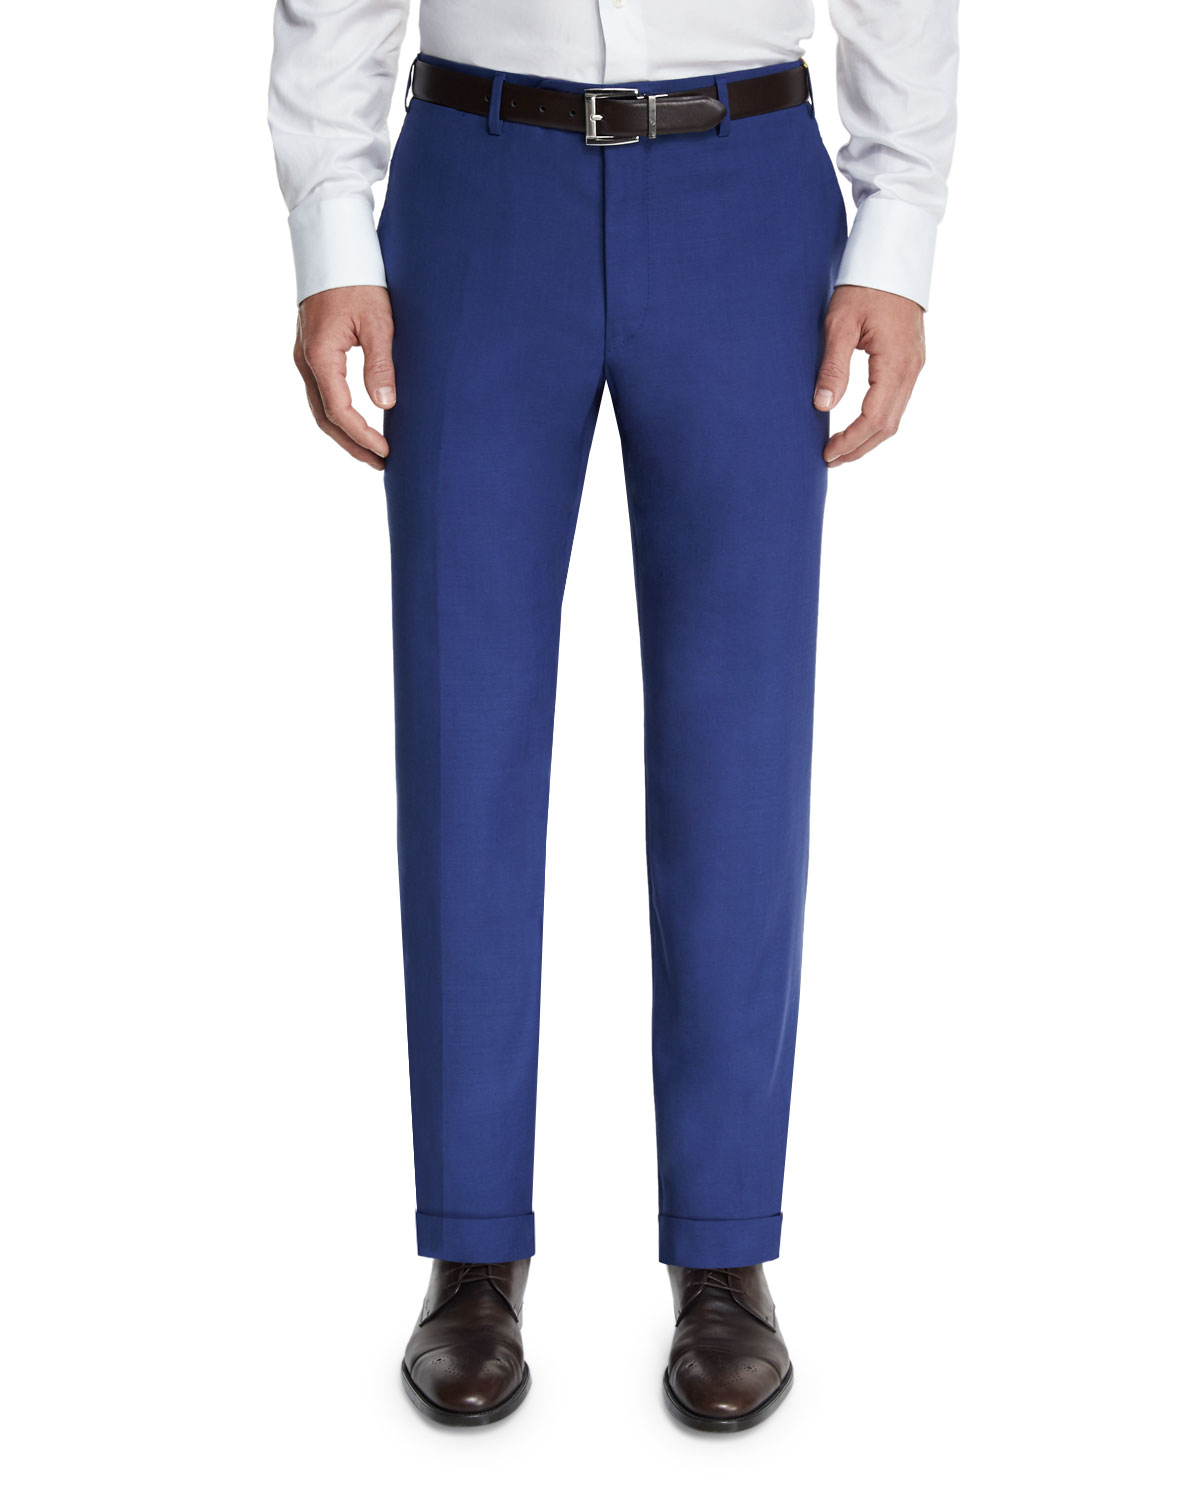 Sienna Contemporary Flat-Front Trousers, Navy